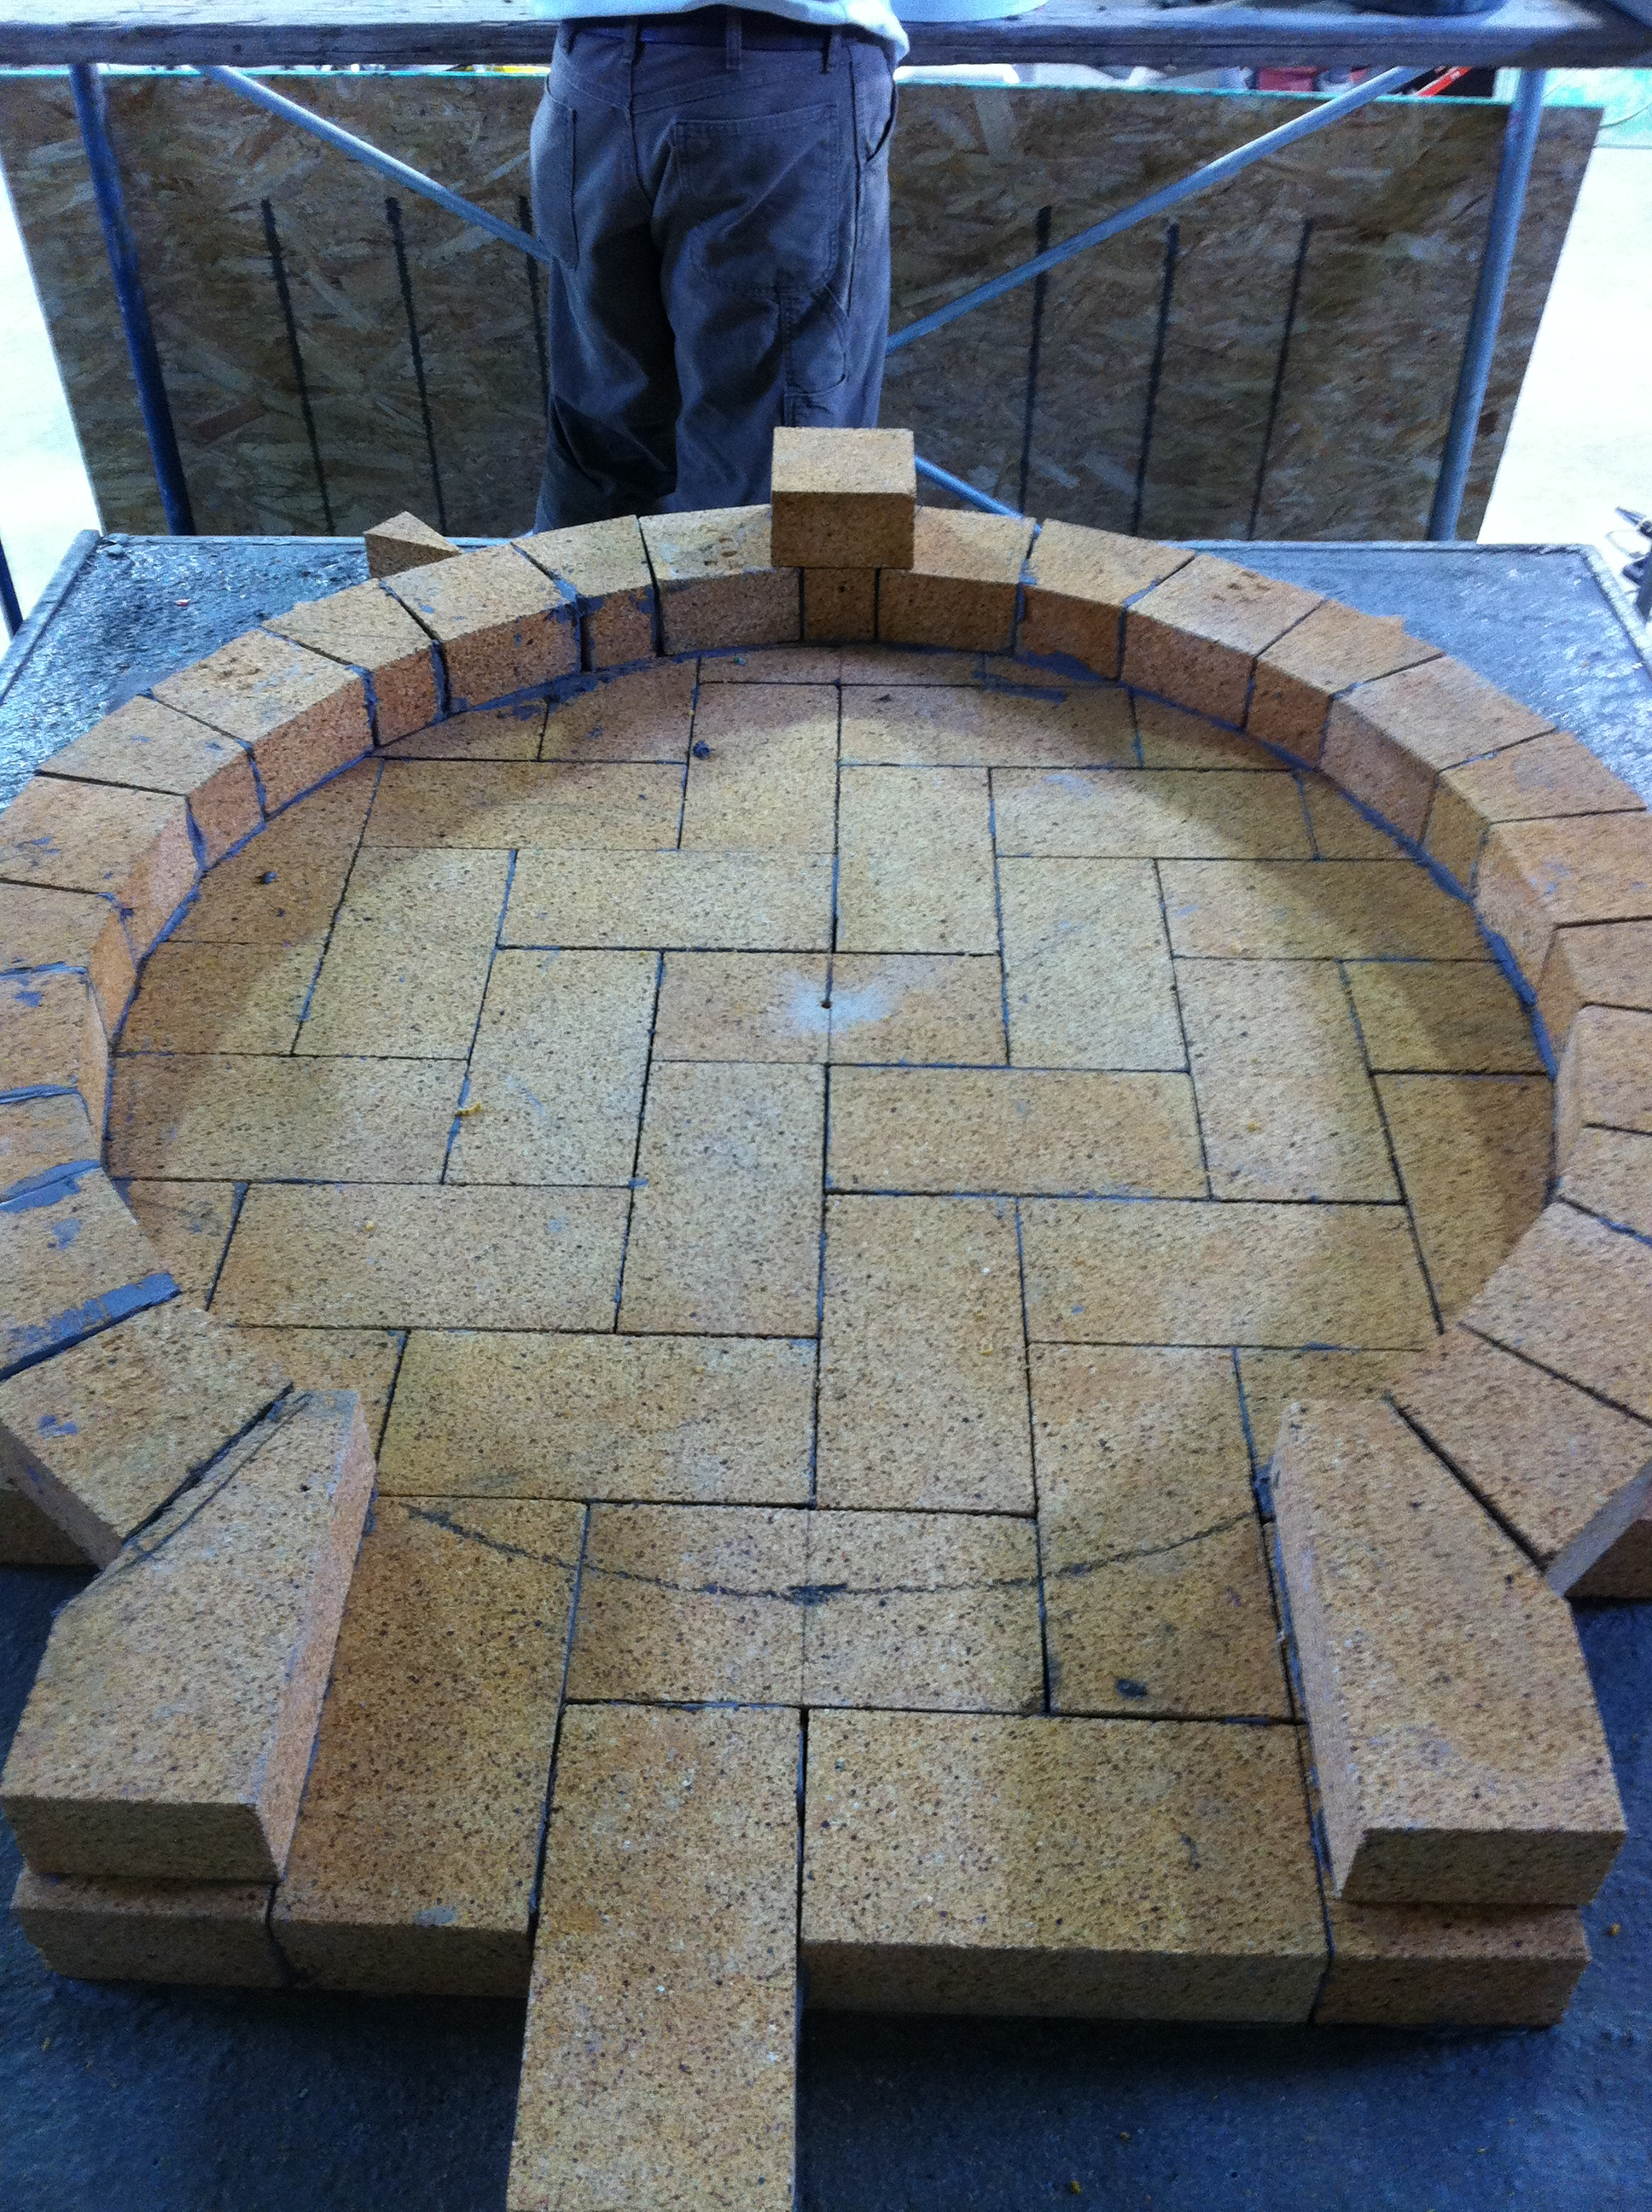 Fire Brick layout for pizza oven.